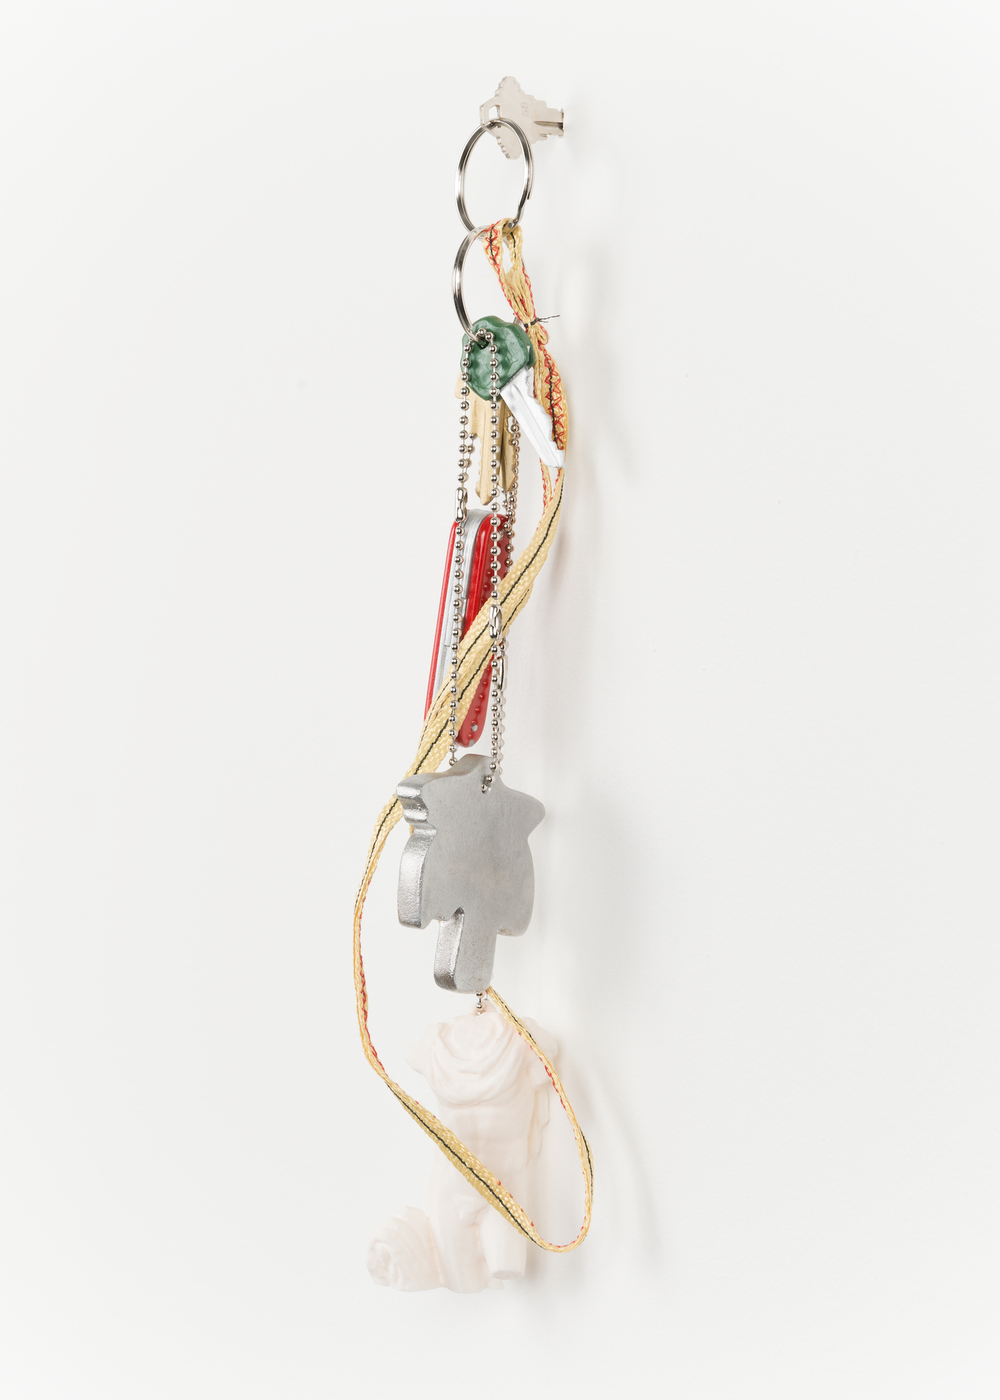 "Chris Bradley  Token (Palm #2)  2013   Cast aluminum, wood, PLA, kevlar, key rings, chain   15"" x 4"" x 3"" CB055"